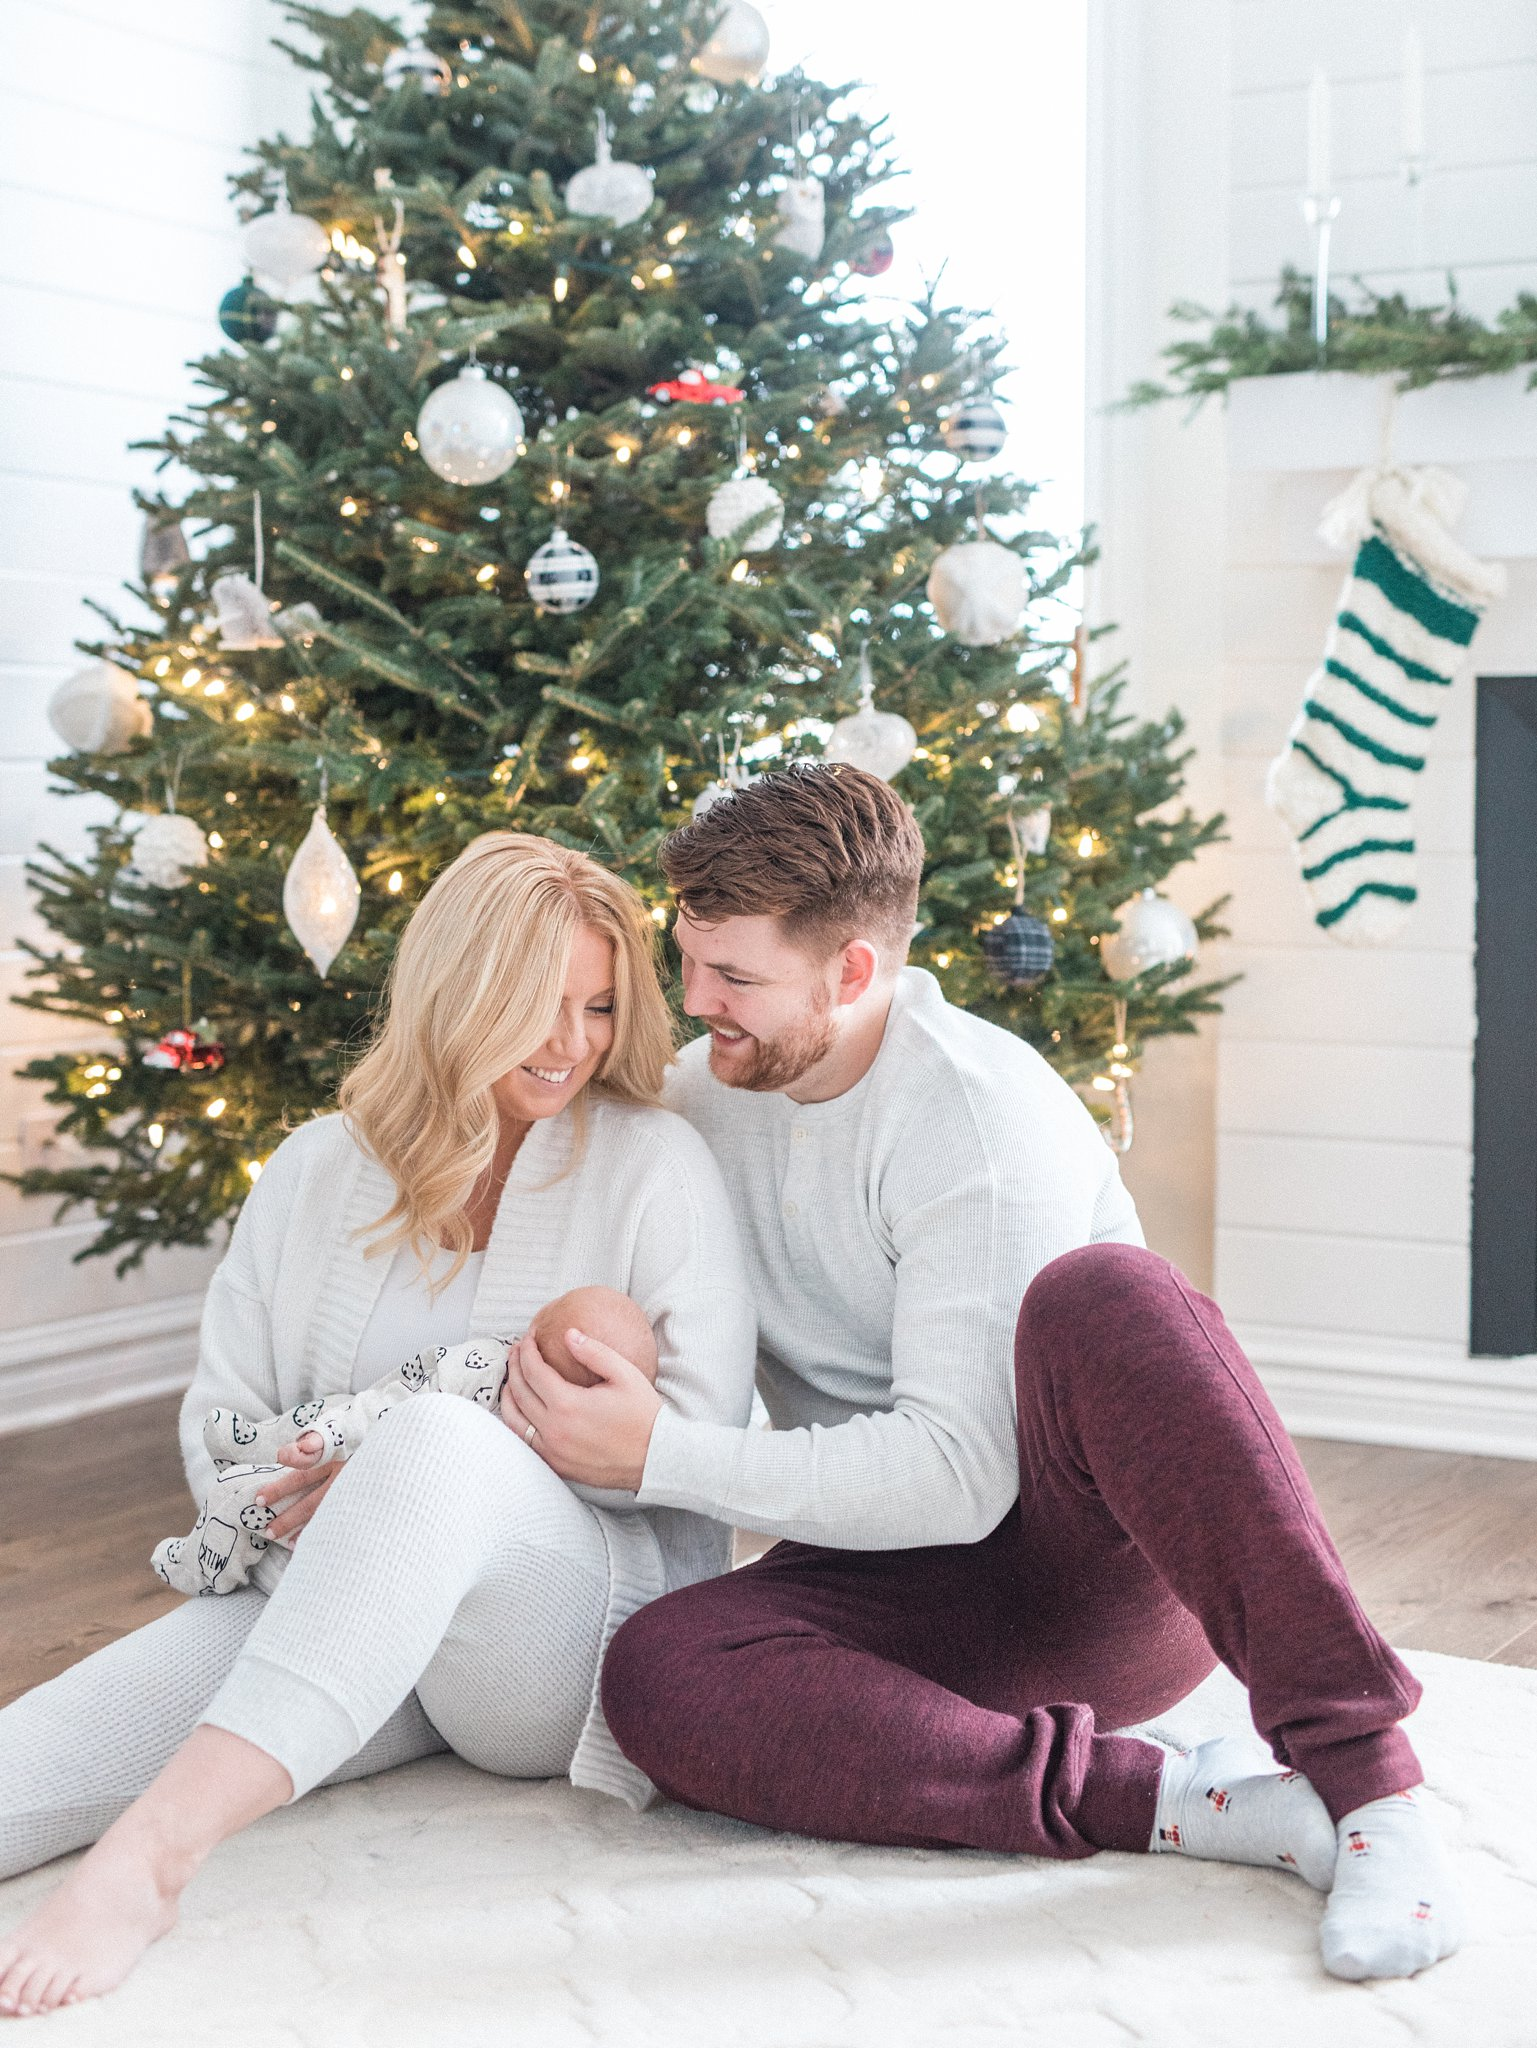 Mom and dad cuddle with baby for their Newborn Lifestyle Photos During the Christmas Holidays